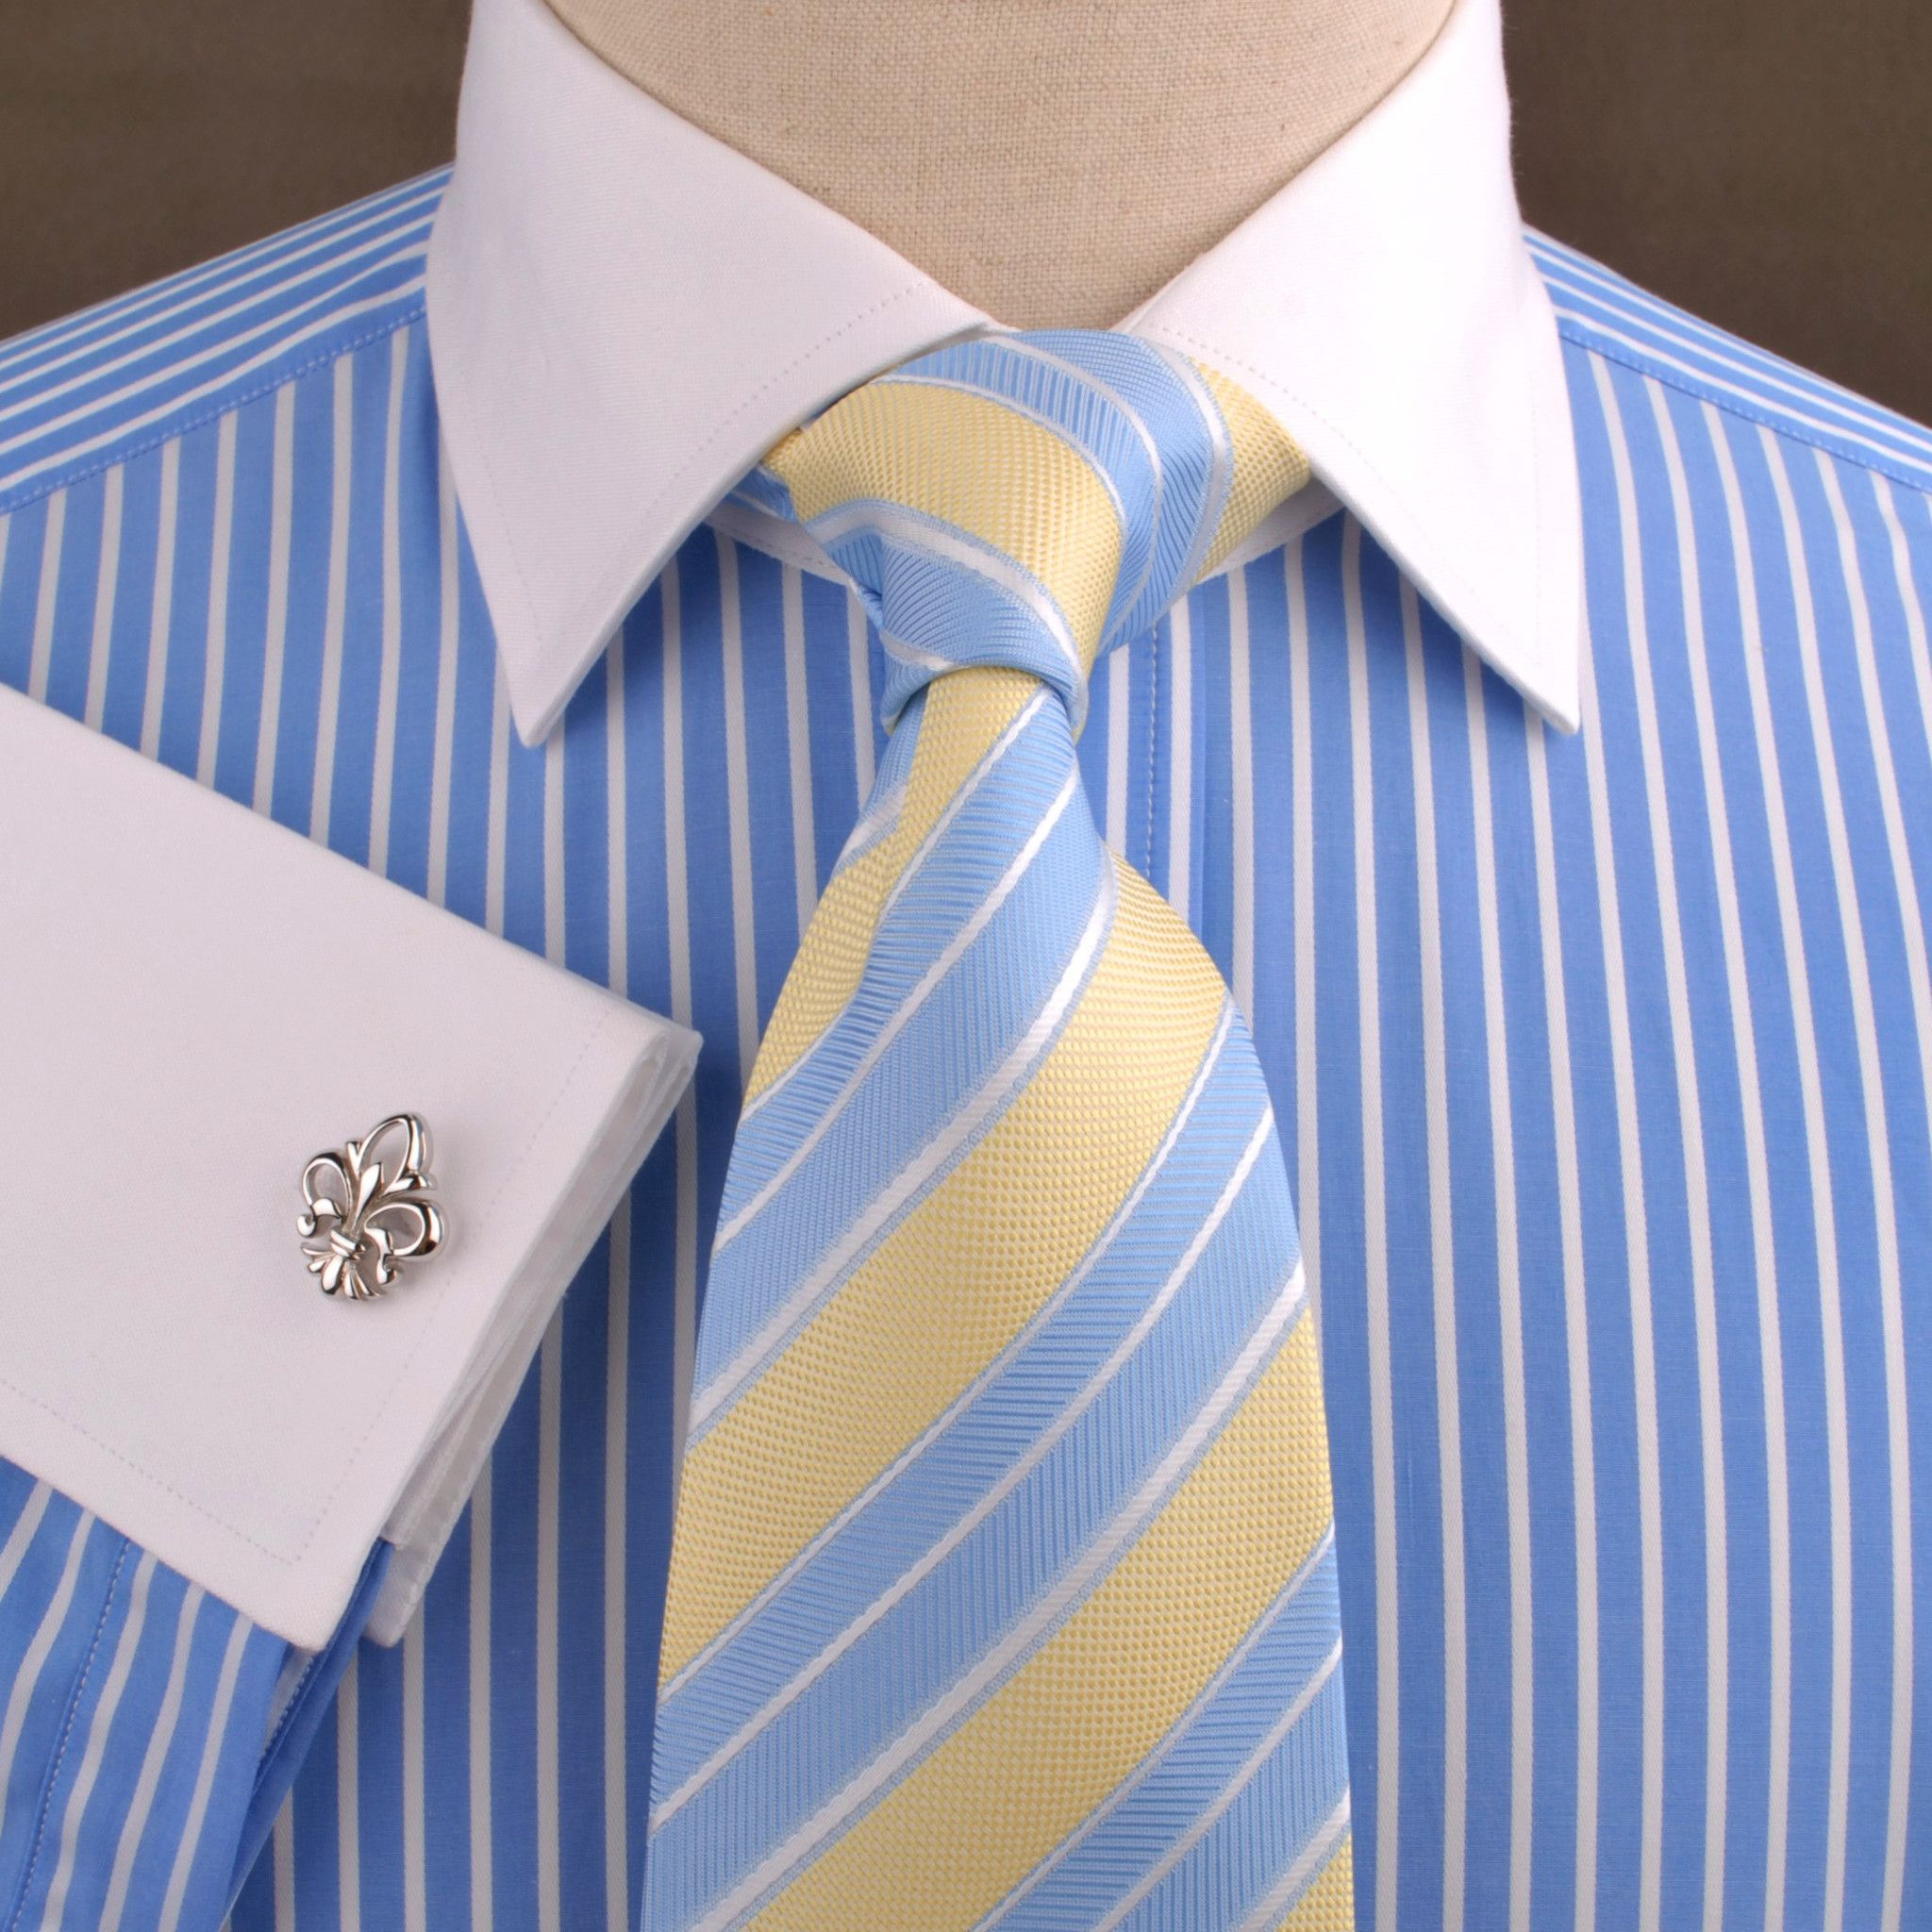 791819b6b9cb4d Blue Striped Dress Shirt White Collar in Formal Business French Cuff ...